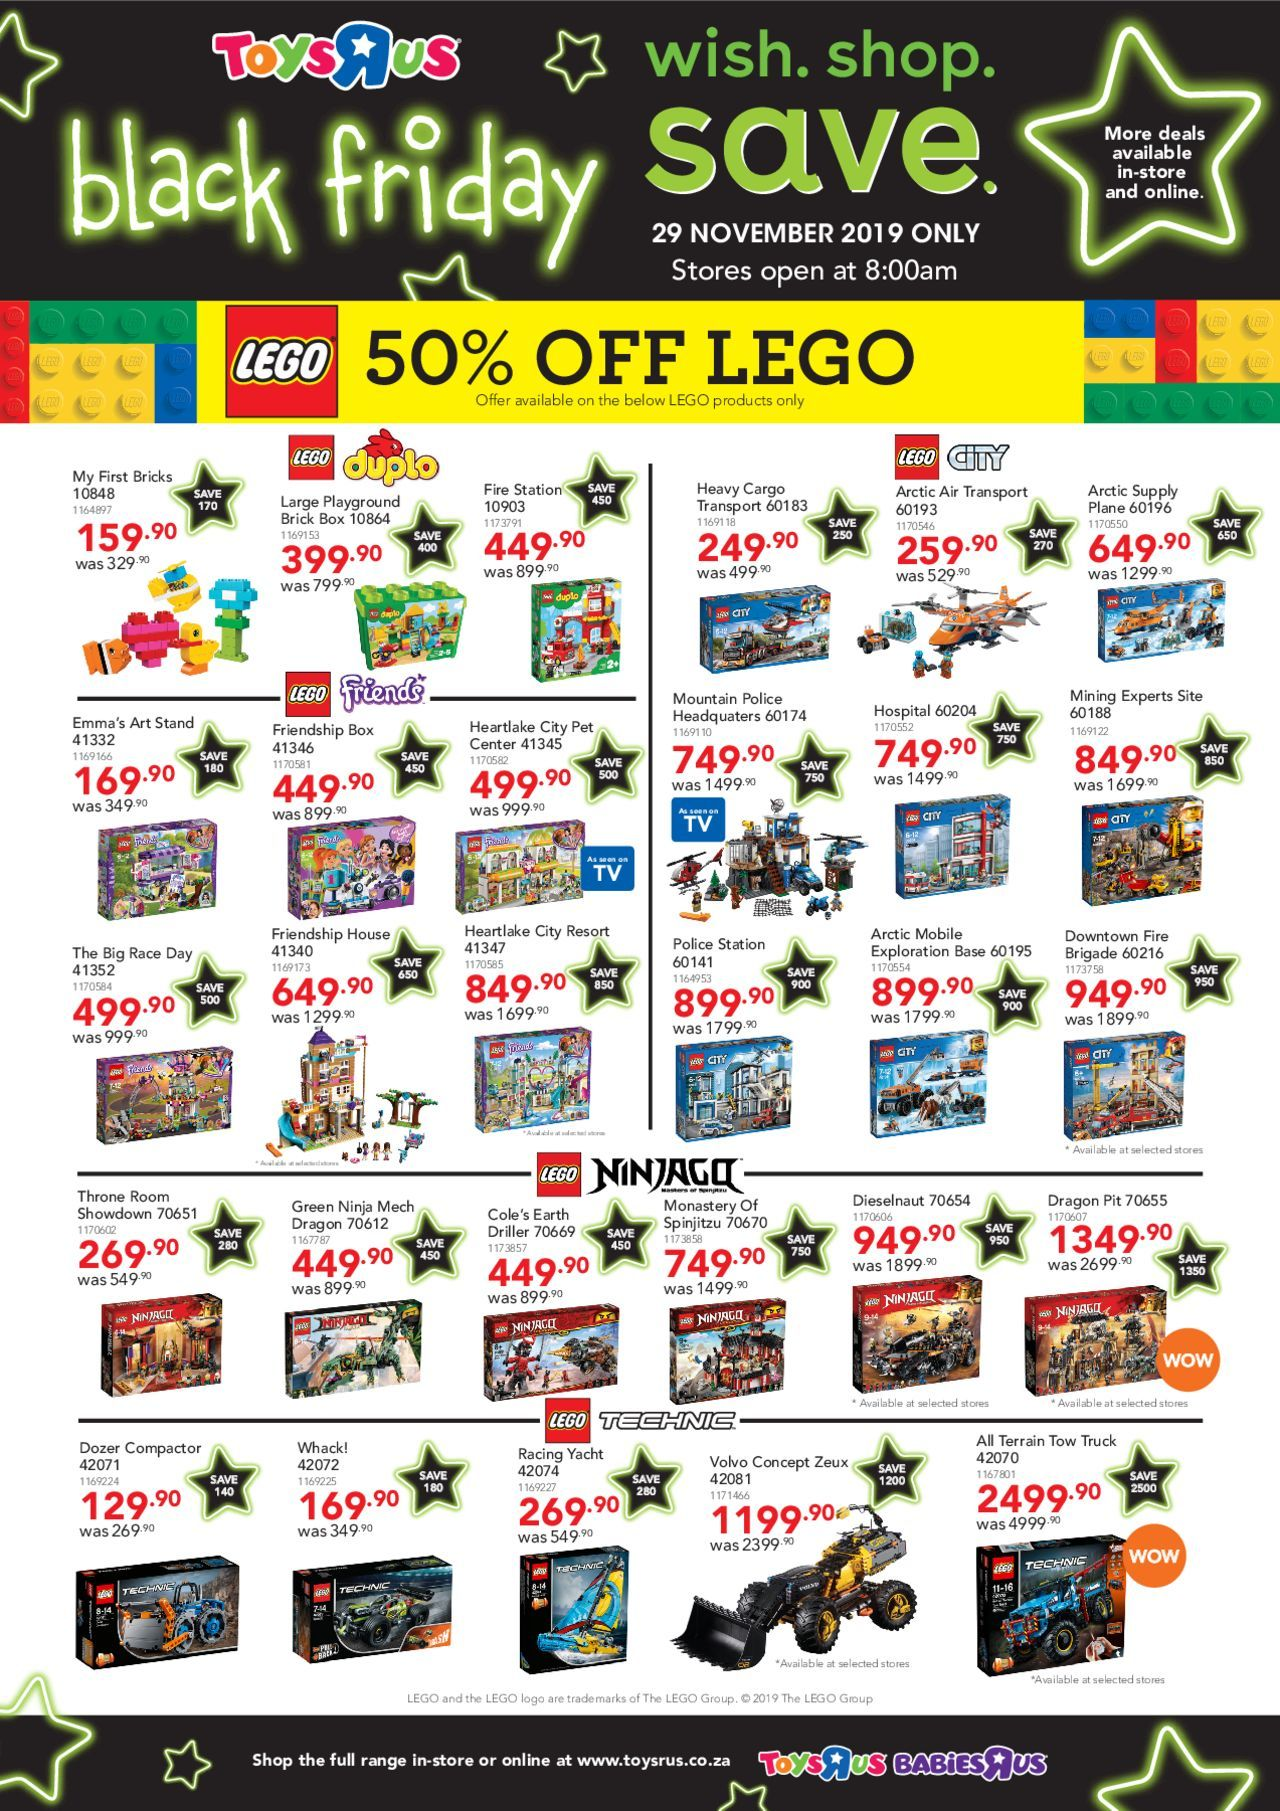 Awesome Catalogue Black Friday Toys R Us France And View In 2020 Black Friday Toys Toys R Us Black Friday